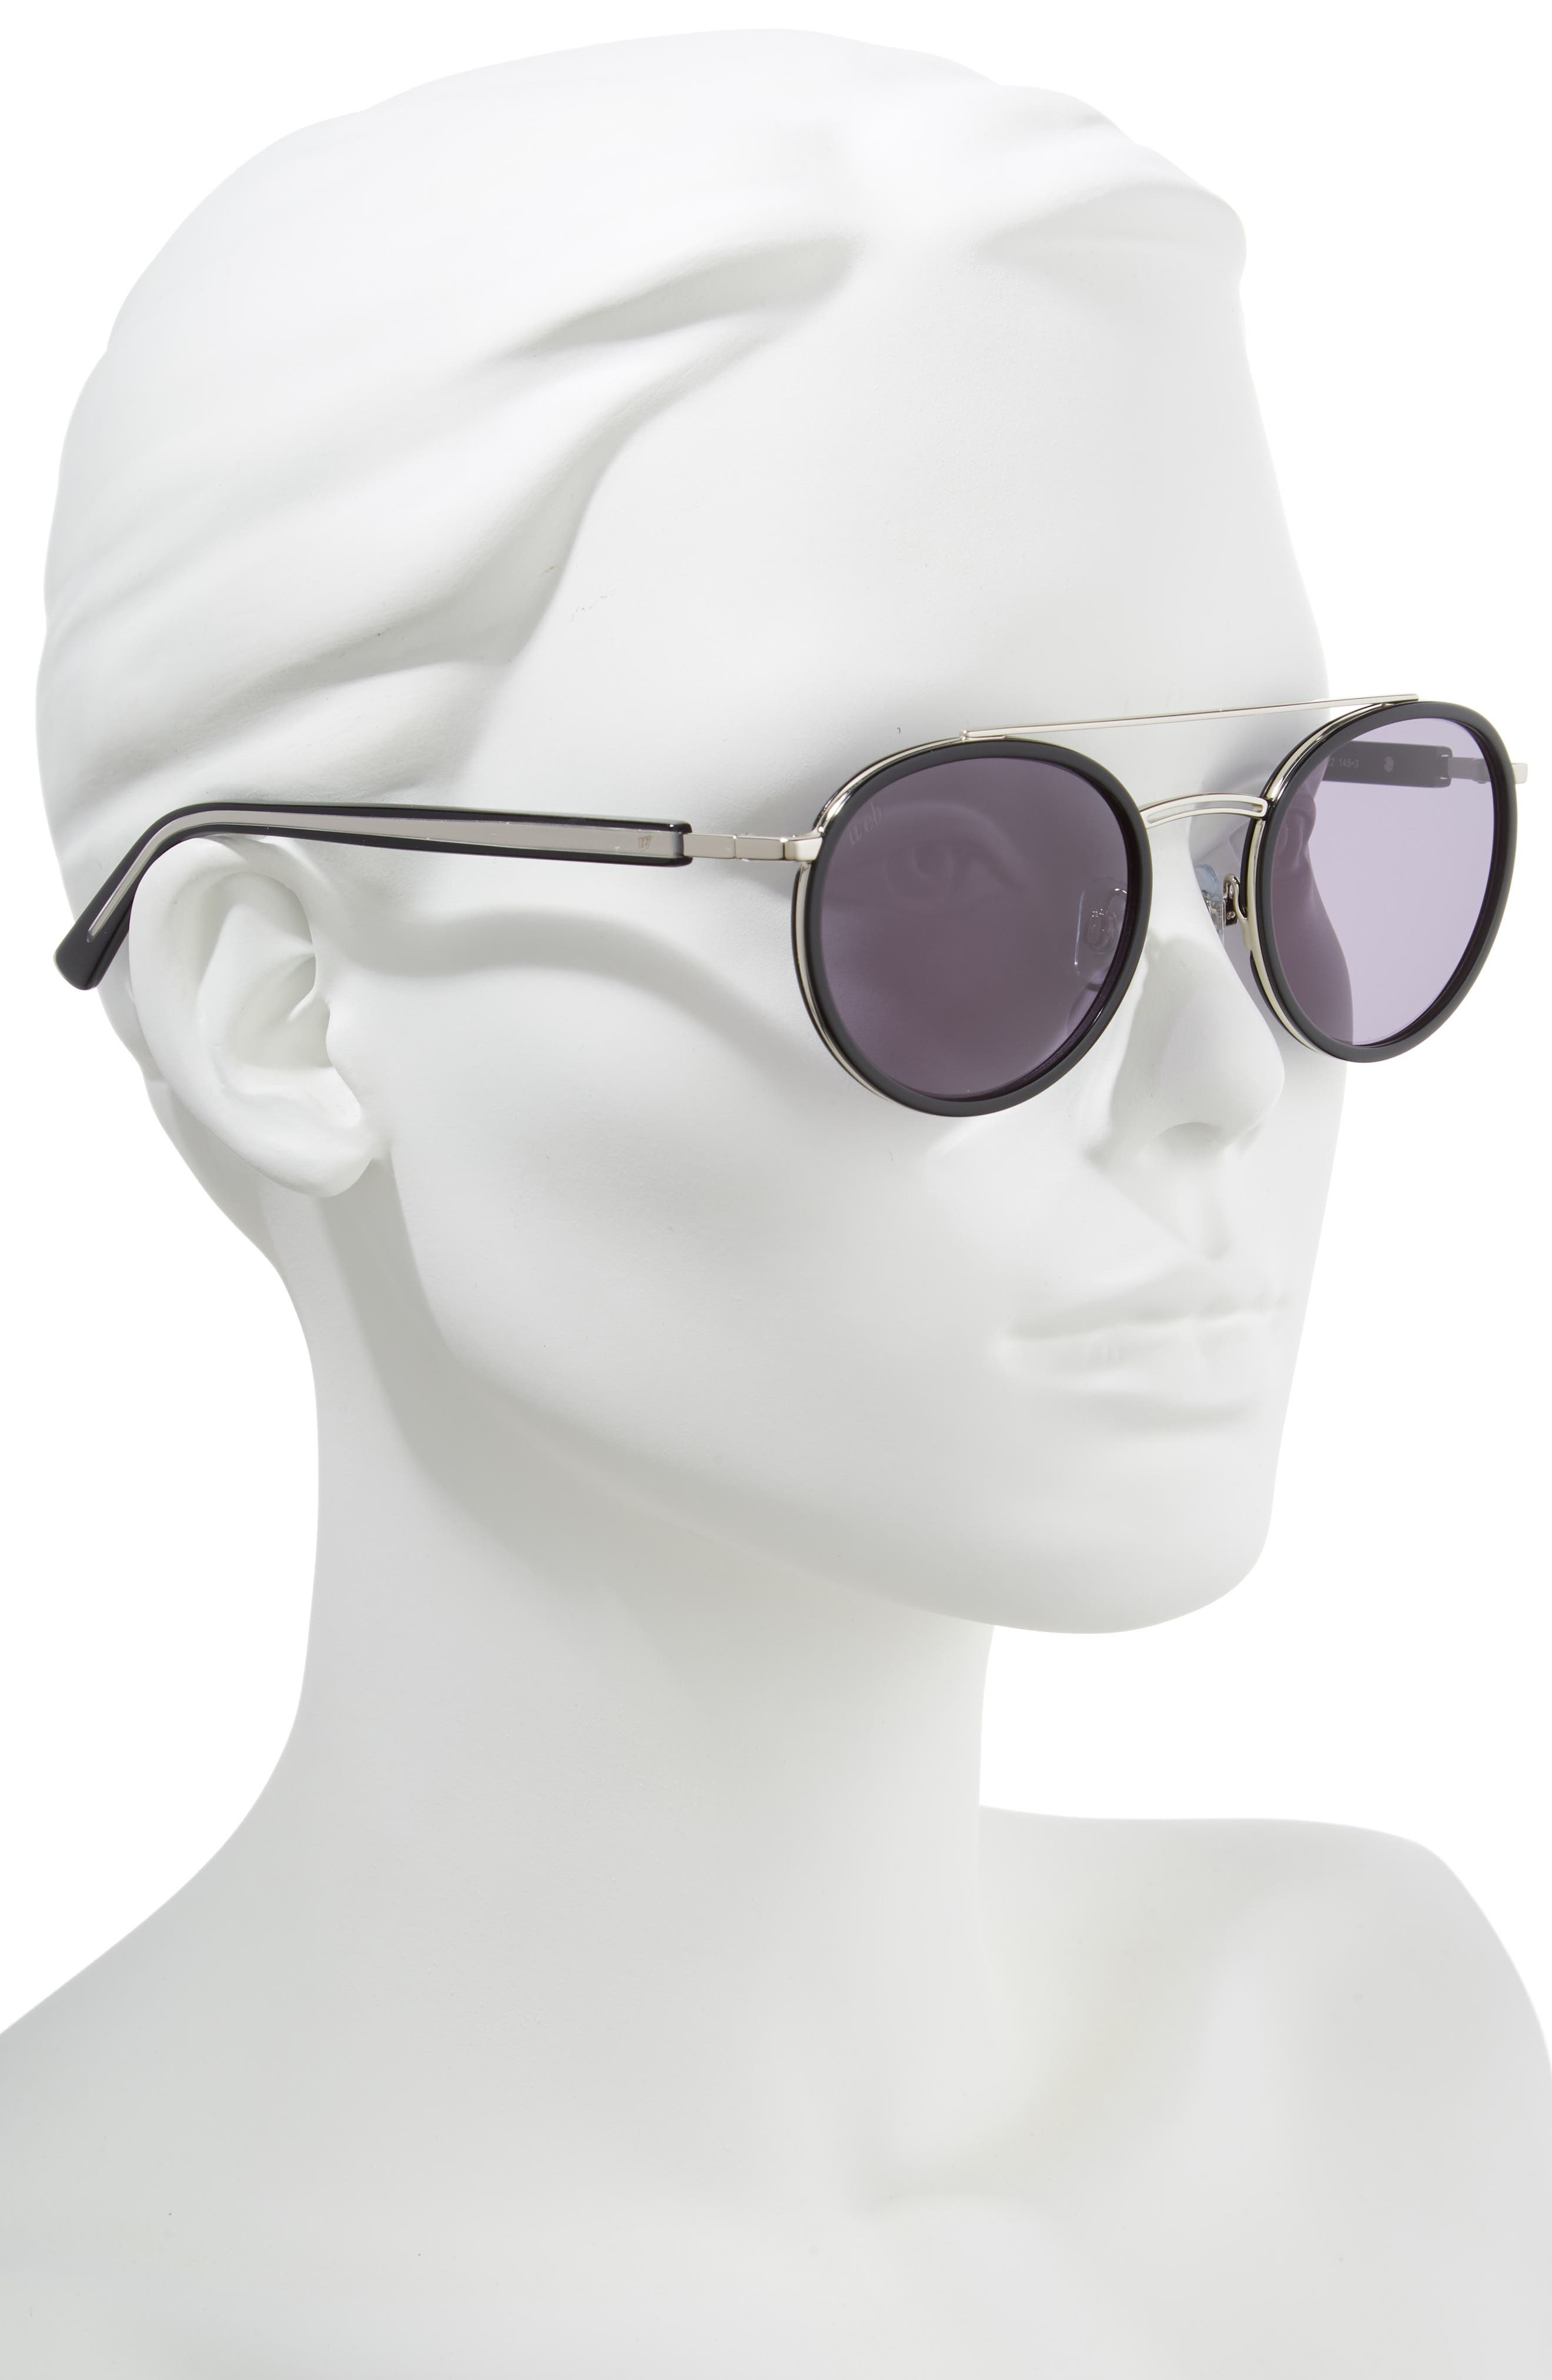 52mm Aviator Sunglasses,                             Alternate thumbnail 2, color,                             SHINY BLACK/ SMOKE